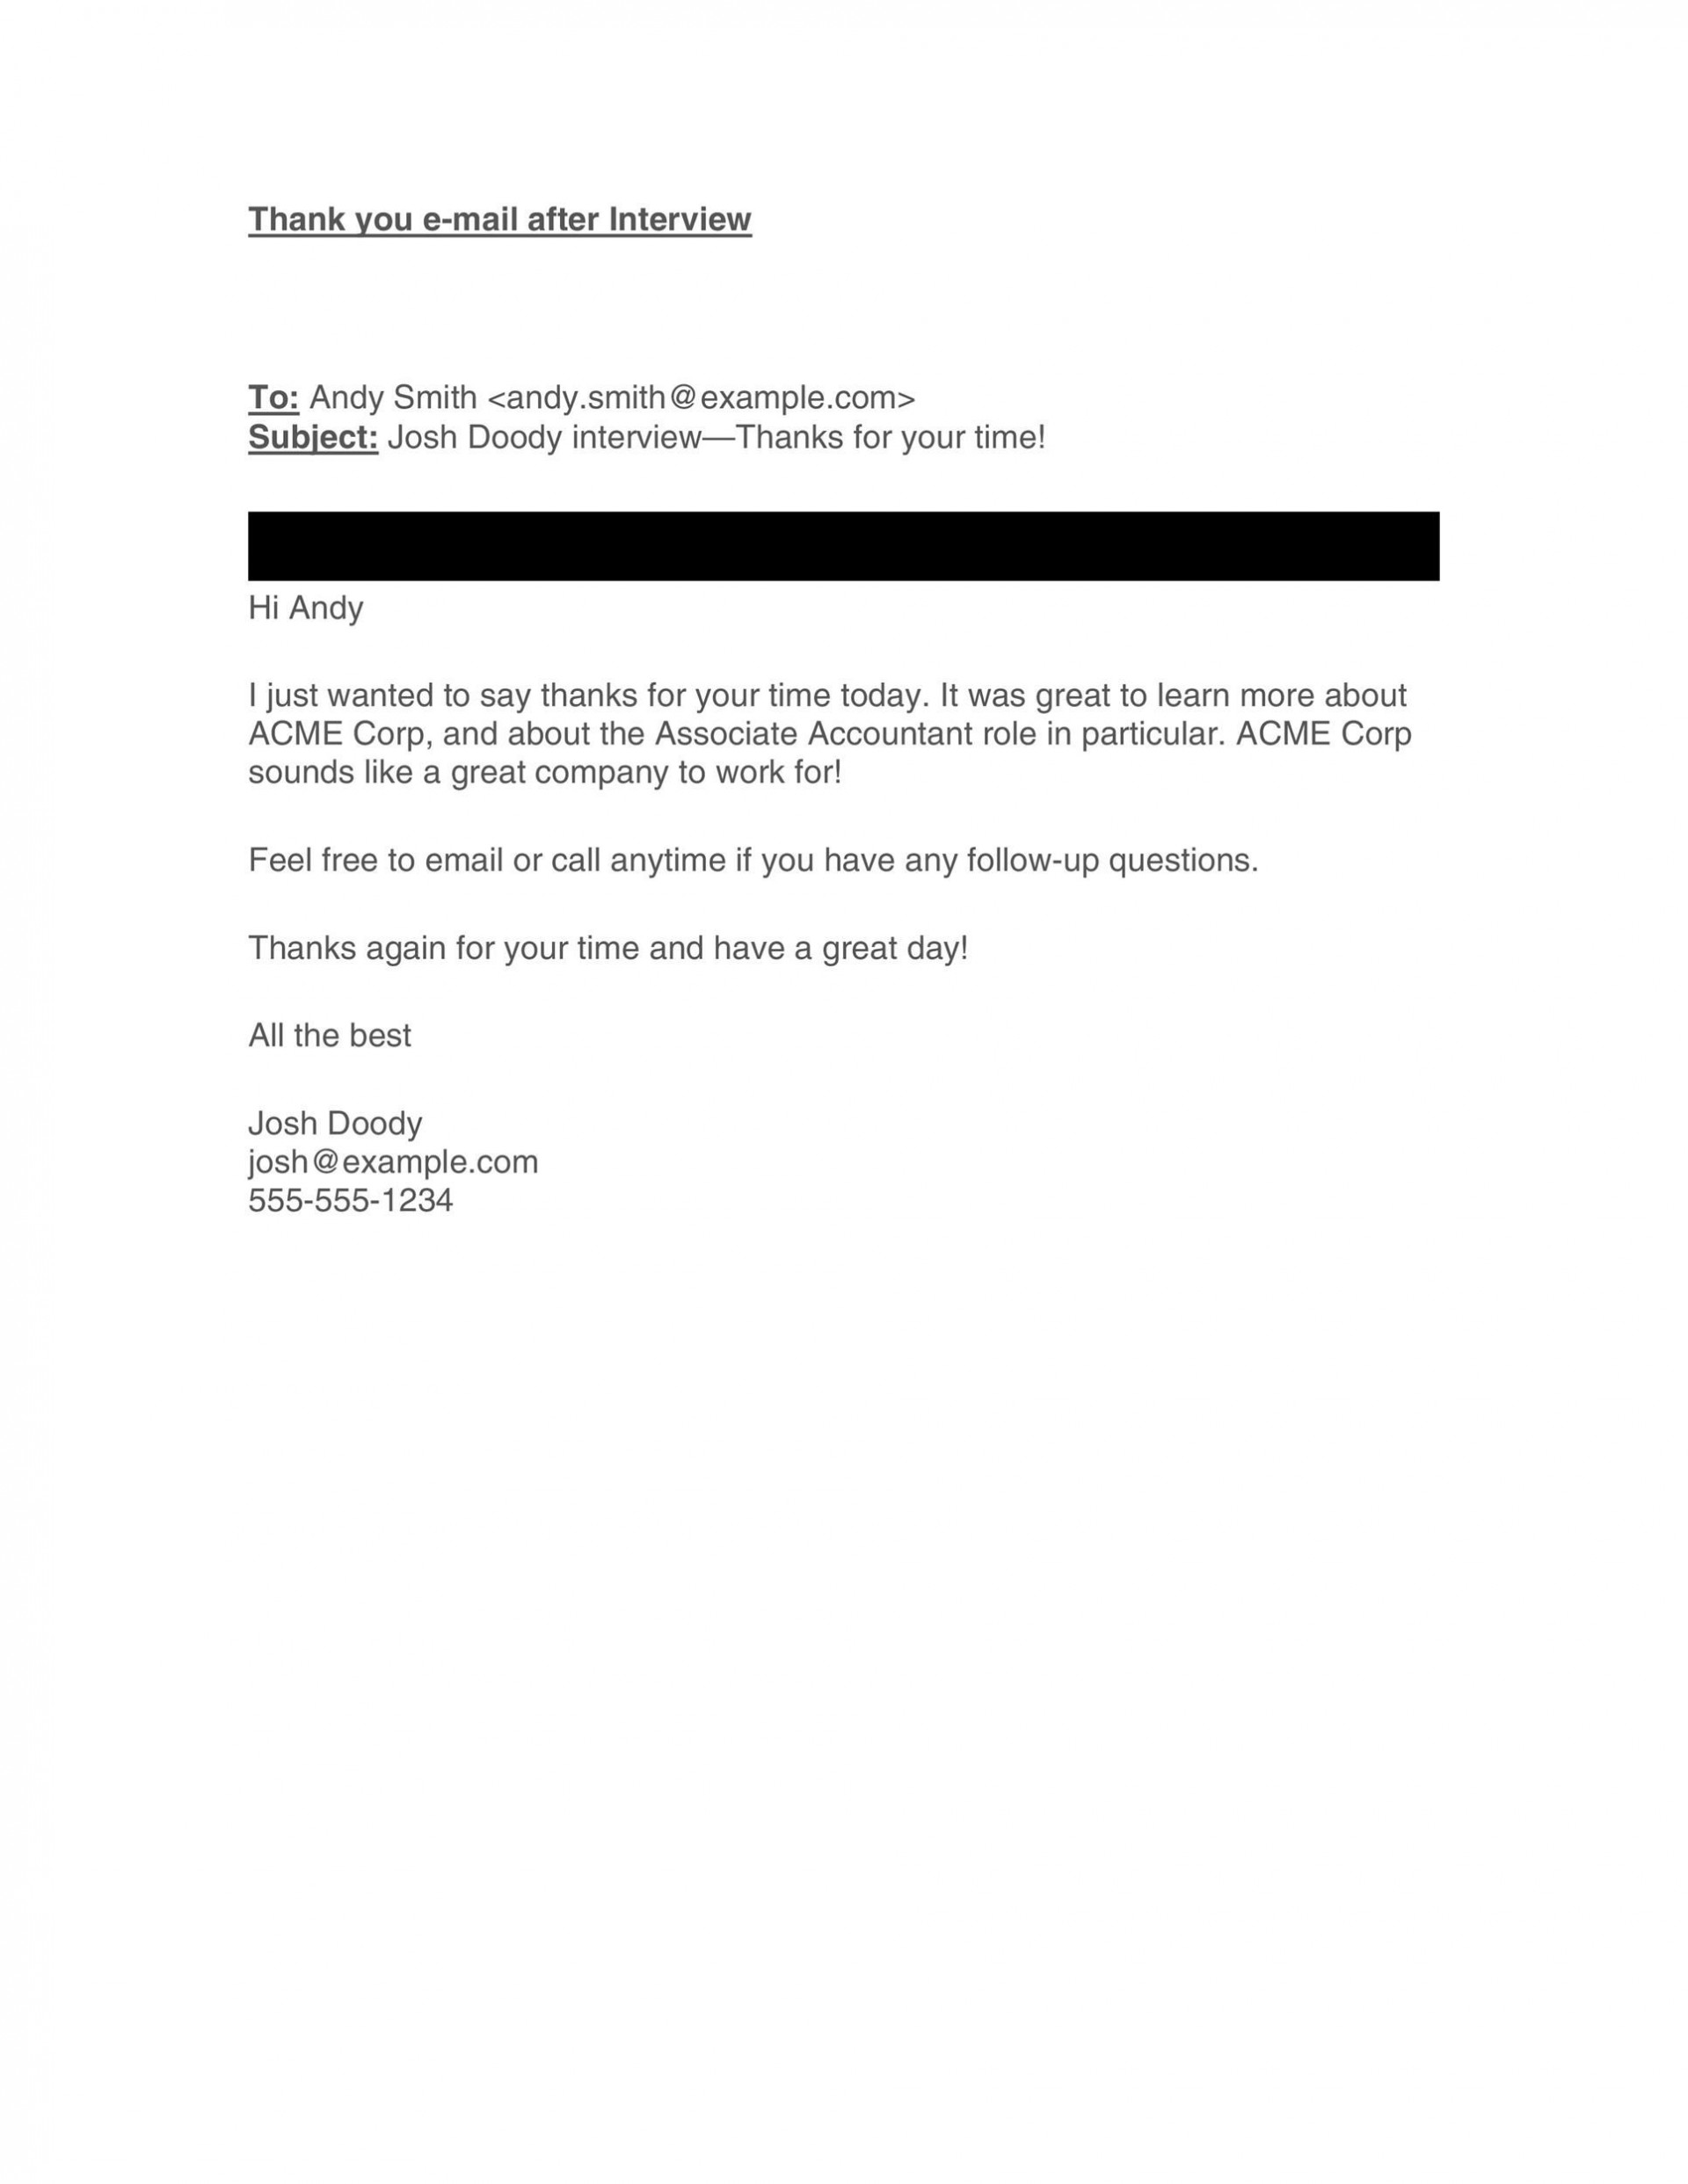 008 Singular Follow Up Email Template Interview High Resolution  Sample For Statu After Second Before Job1920